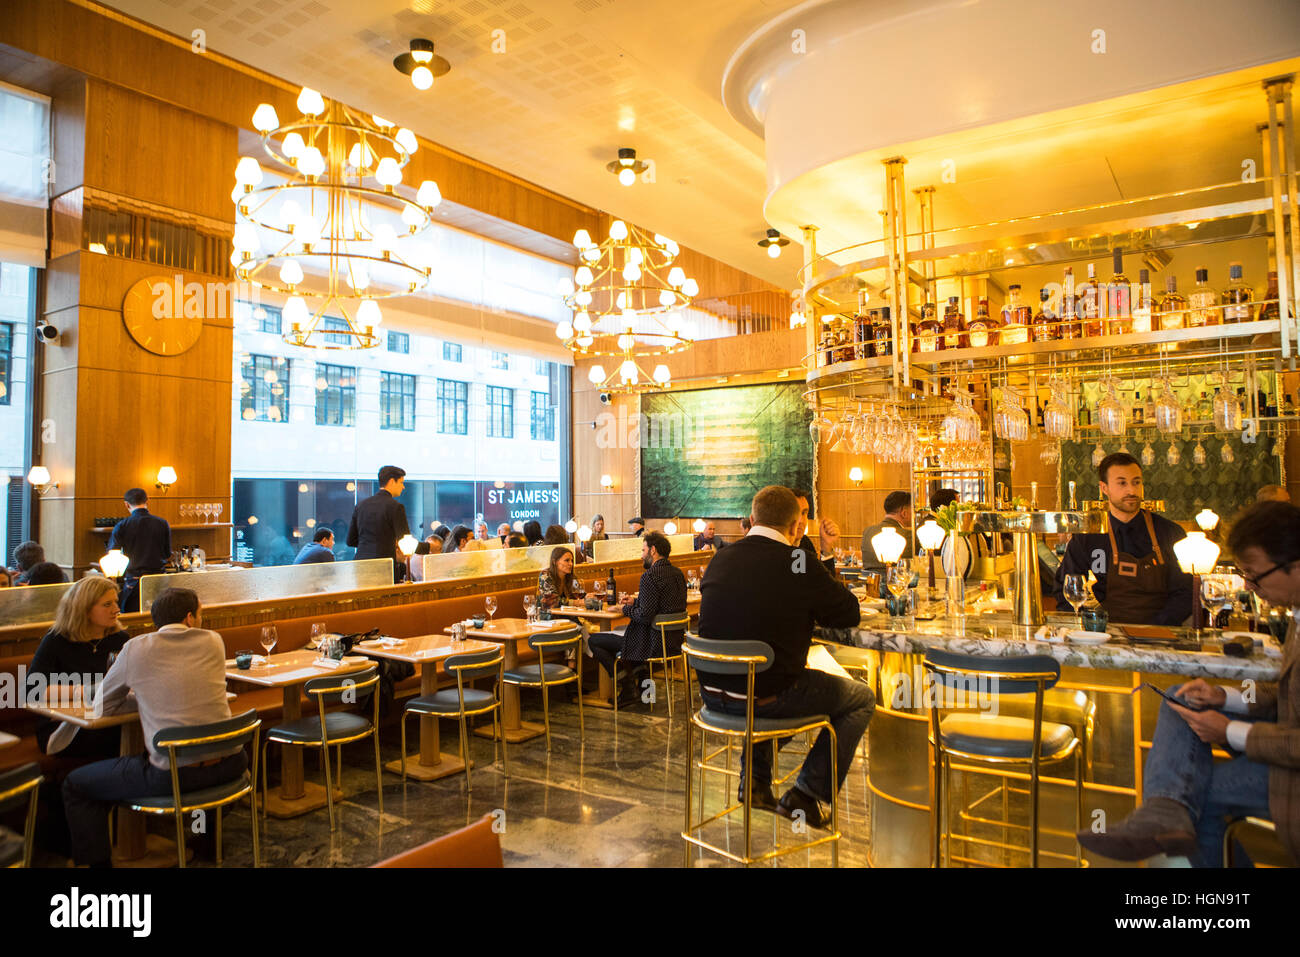 The interior of the restaurant Aquavit in central London. One of the many fine restaurants that are in the city - Stock Image